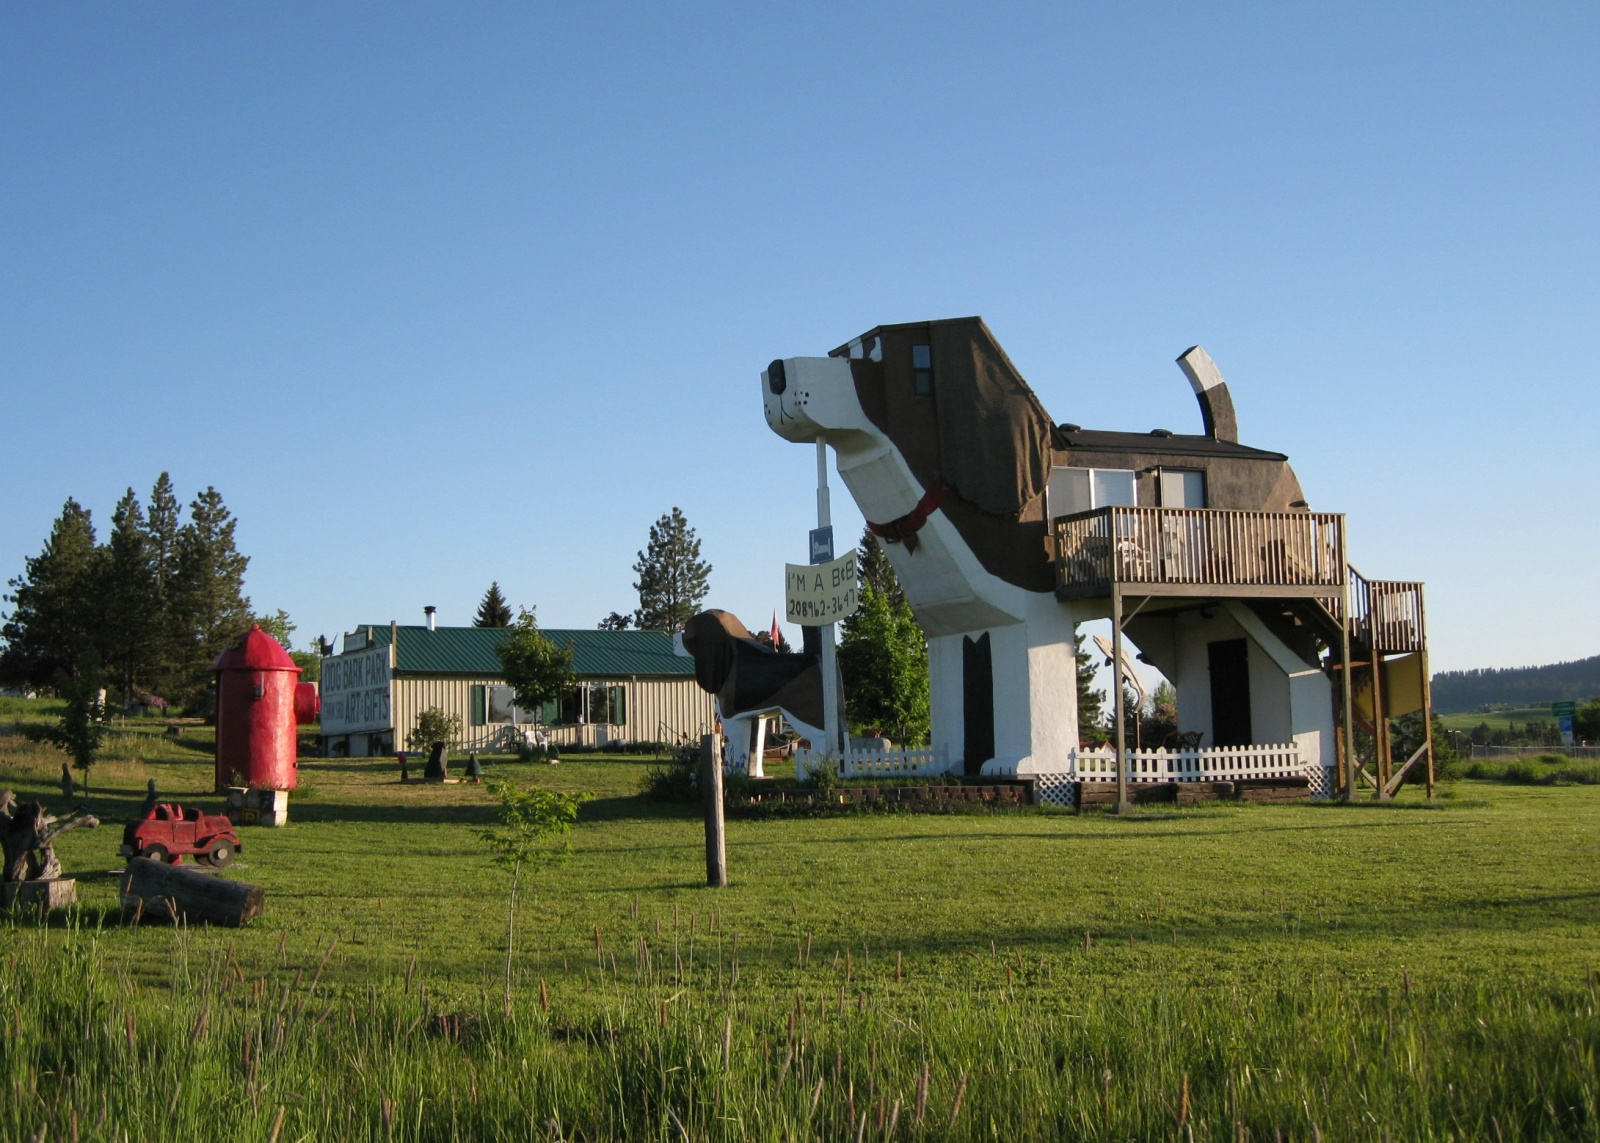 Dog bark park inn and bingo was his name oh for Hotel dans le monde